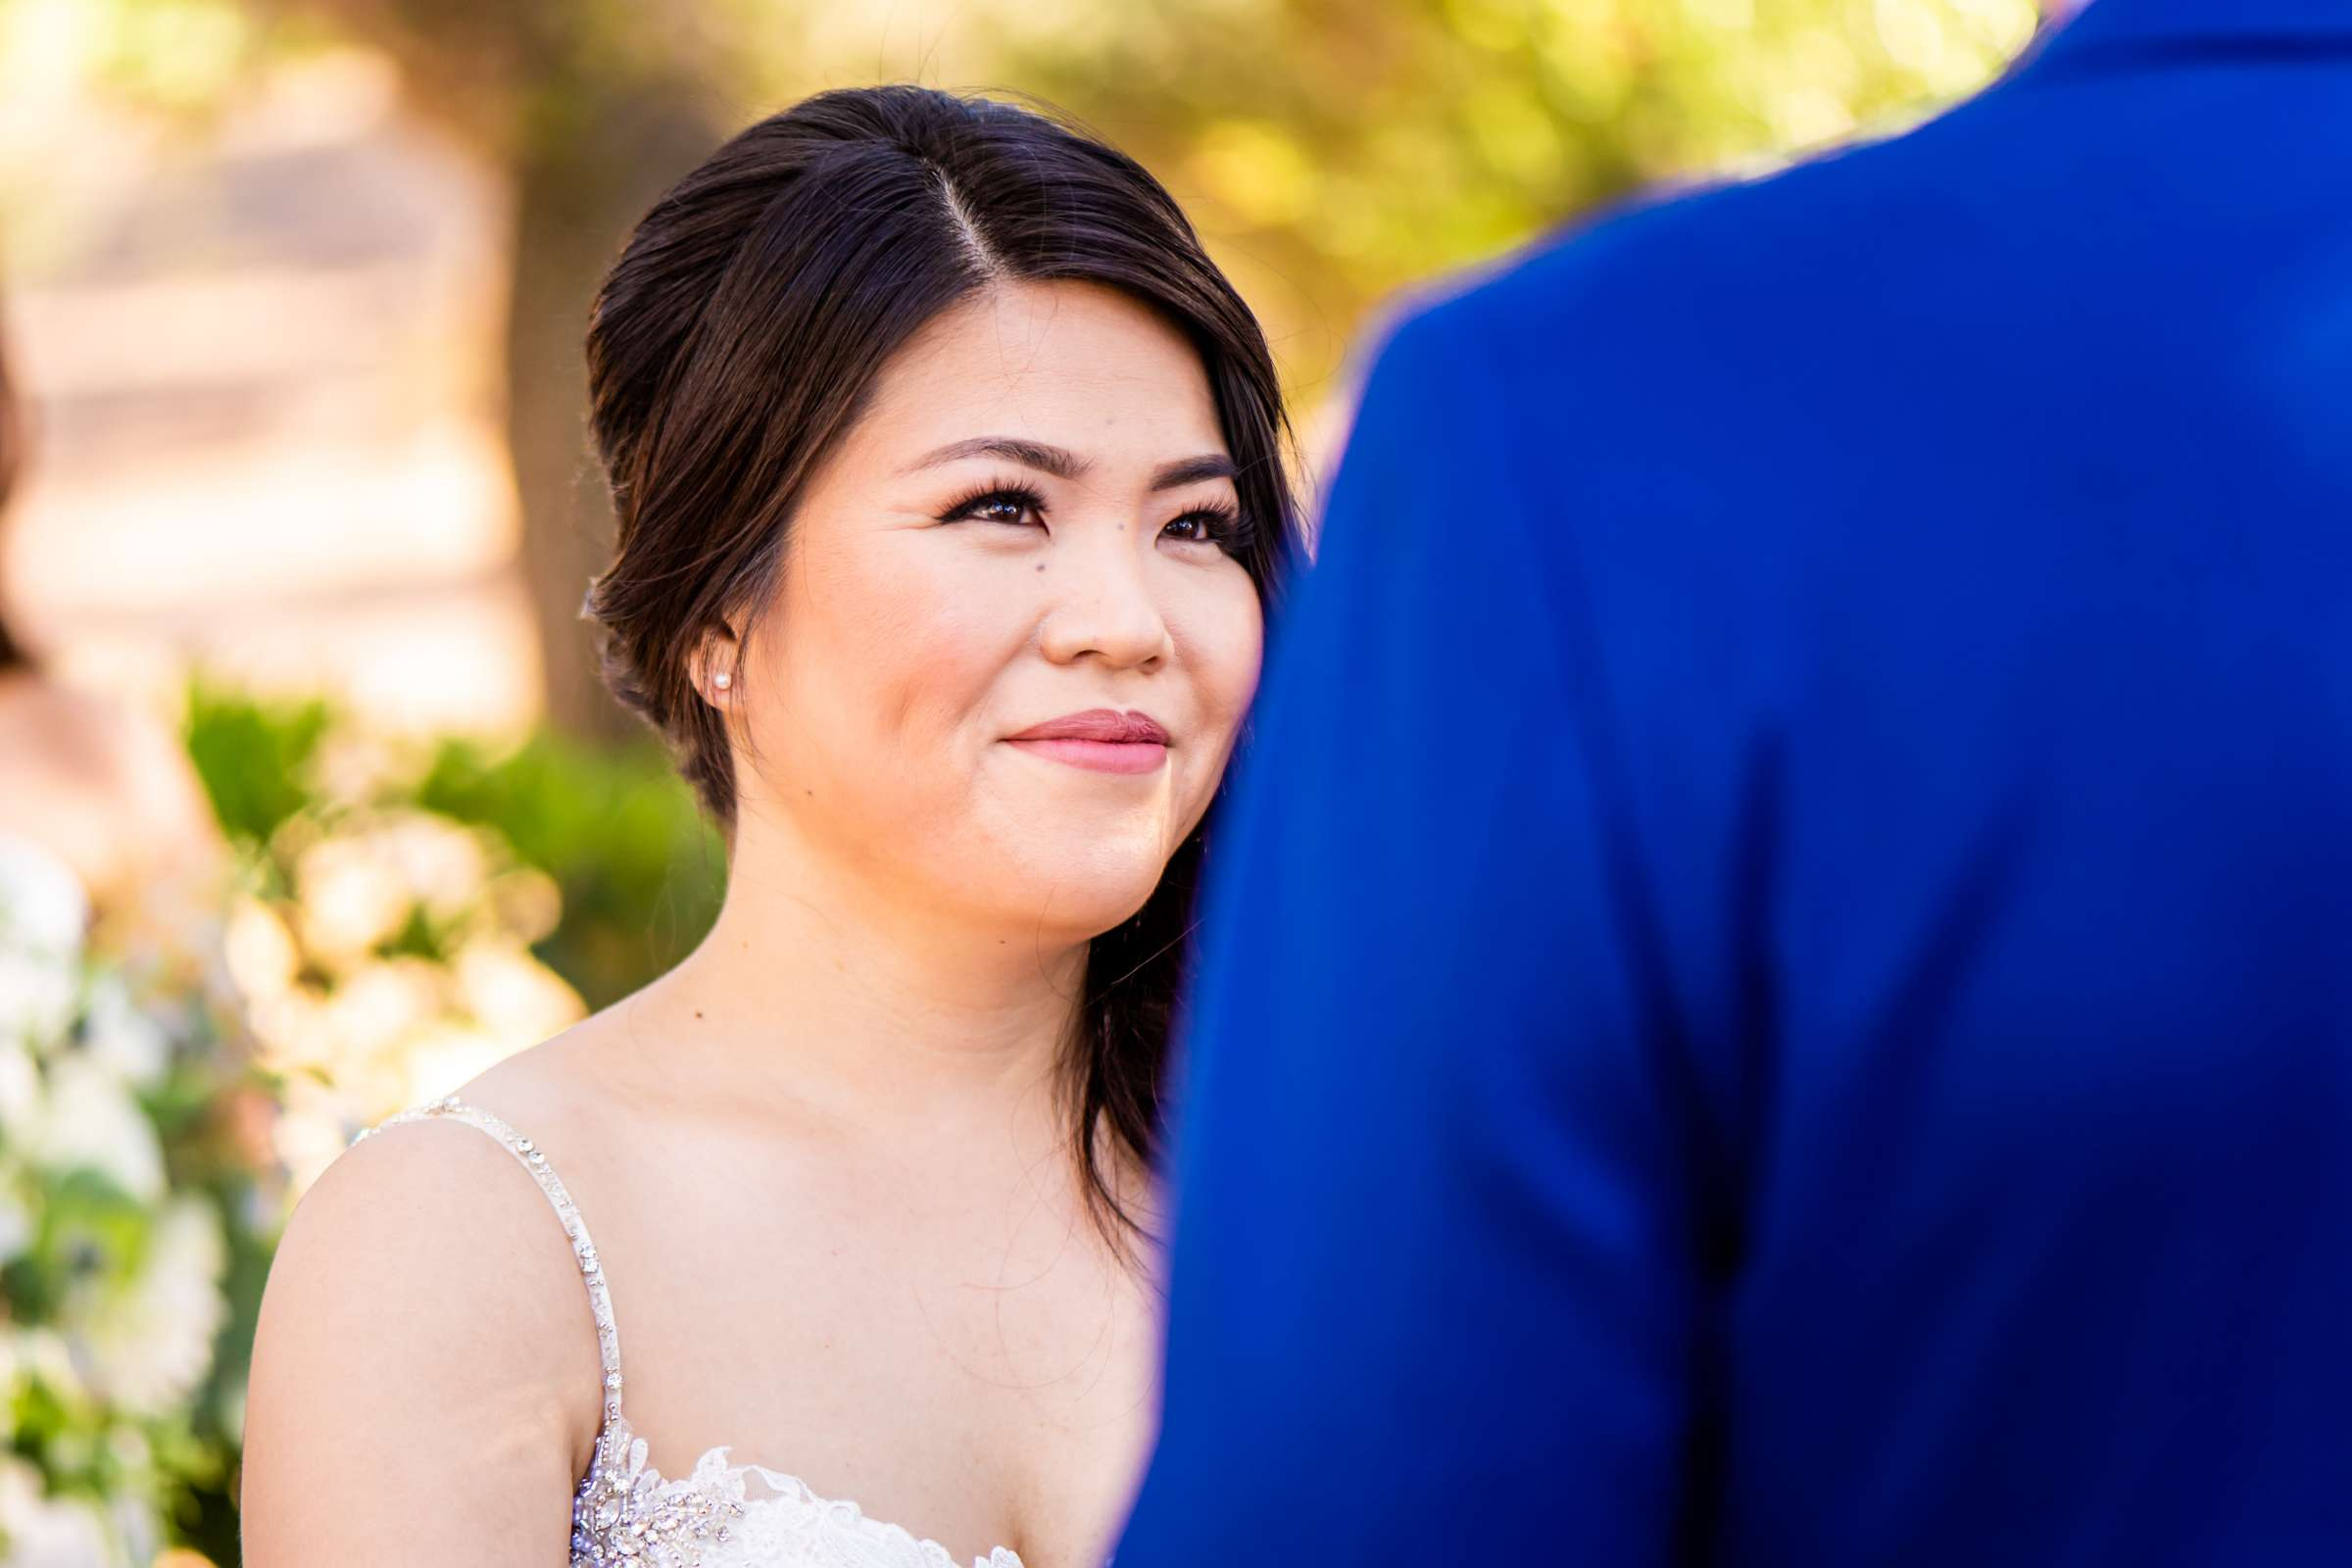 Mt Woodson Castle Wedding coordinated by I Do Weddings, Aya and Jared Wedding Photo #486937 by True Photography